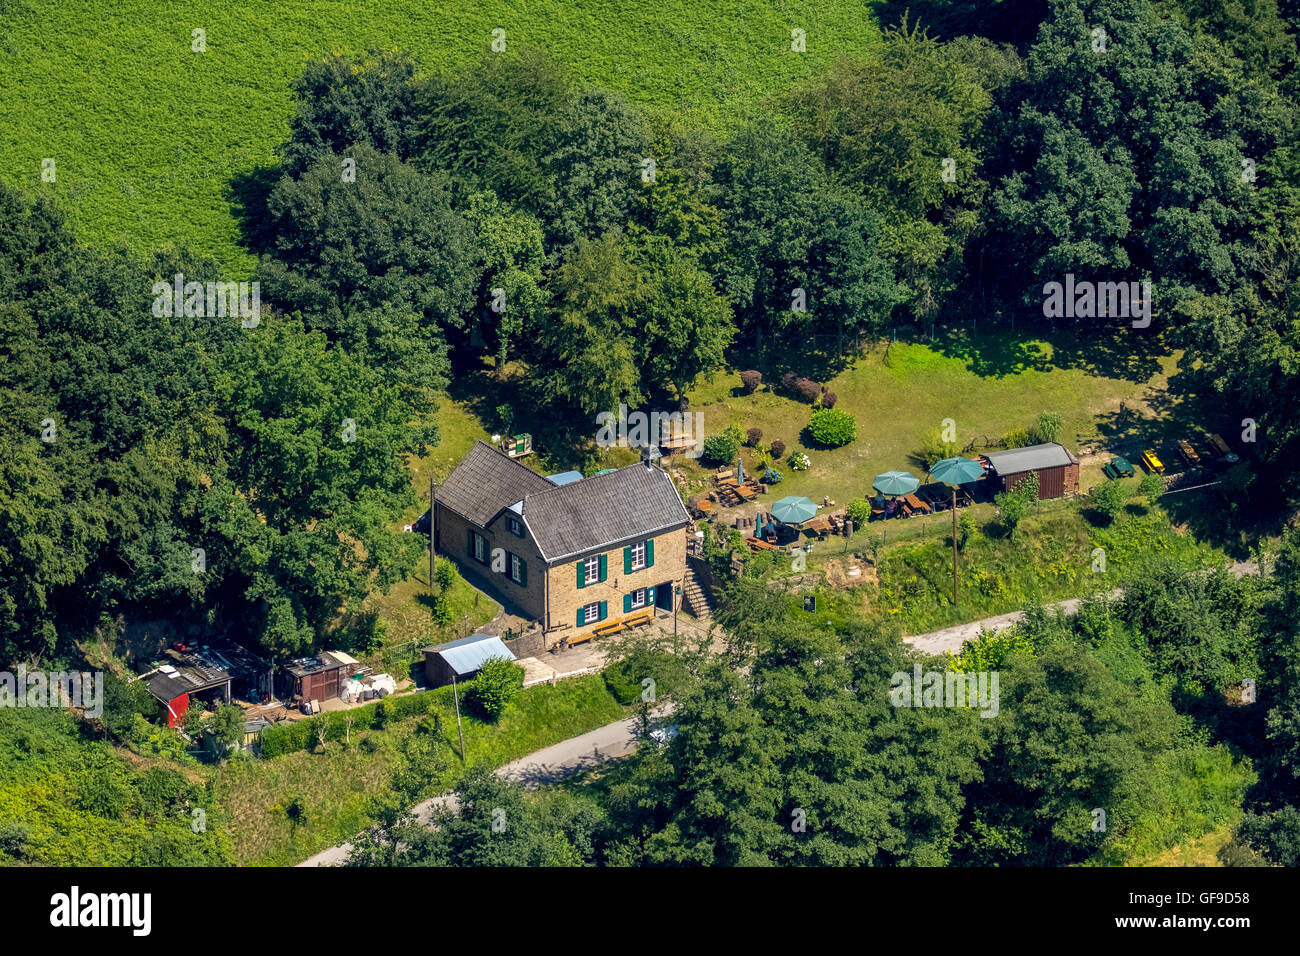 Aerial view, Muttental with prayer house in Muttental with